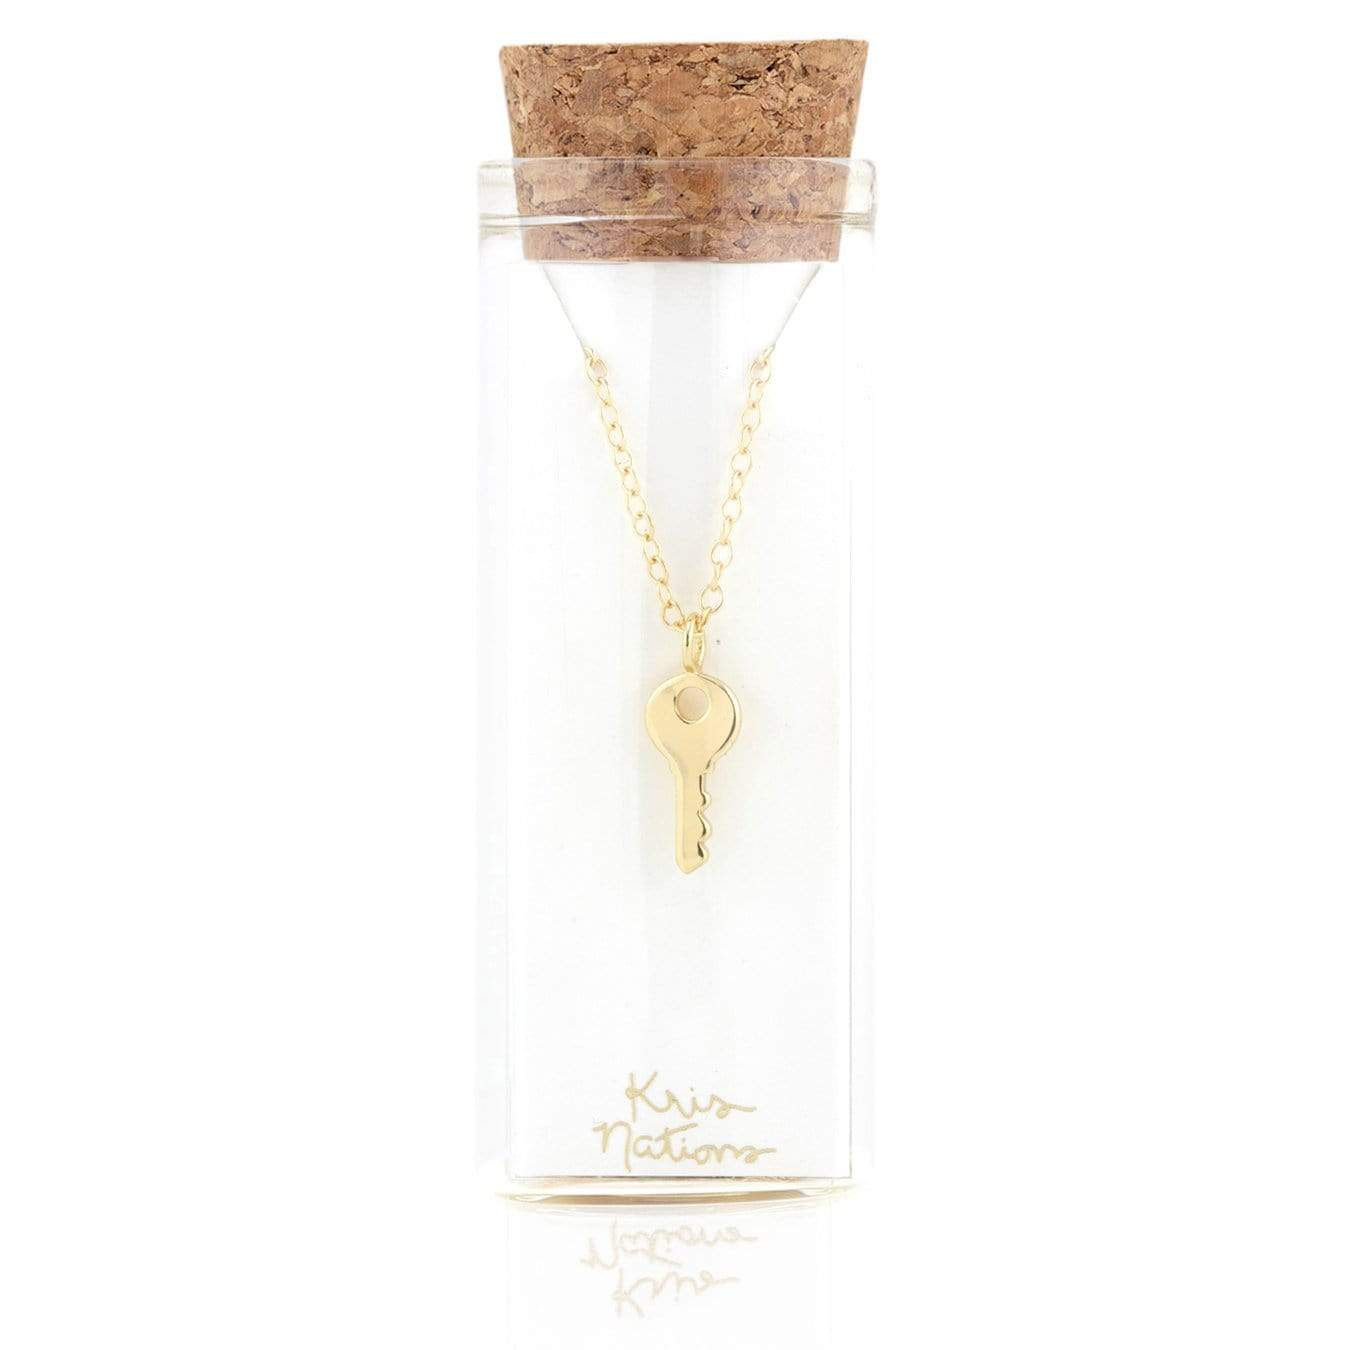 Kris Nations Key Charm Necklace